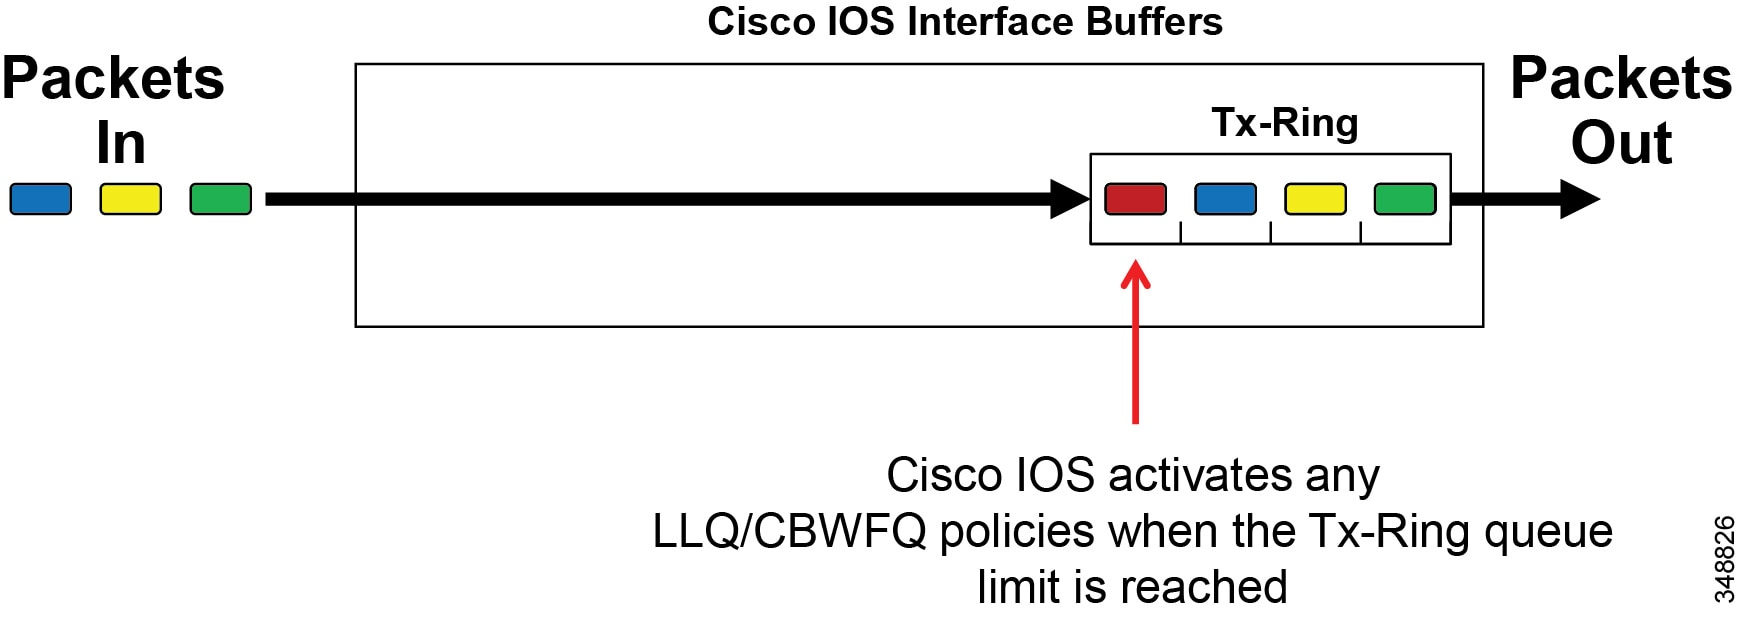 Cisco Collaboration System 12x Solution Reference Network Designs Telephone Hybrid Circuit Schematic Furthermore Ringer The Tx Ring Also Serves To Indicate Interface Congestion Ios Software Prior Packets Are Sent On A Fifo Basis